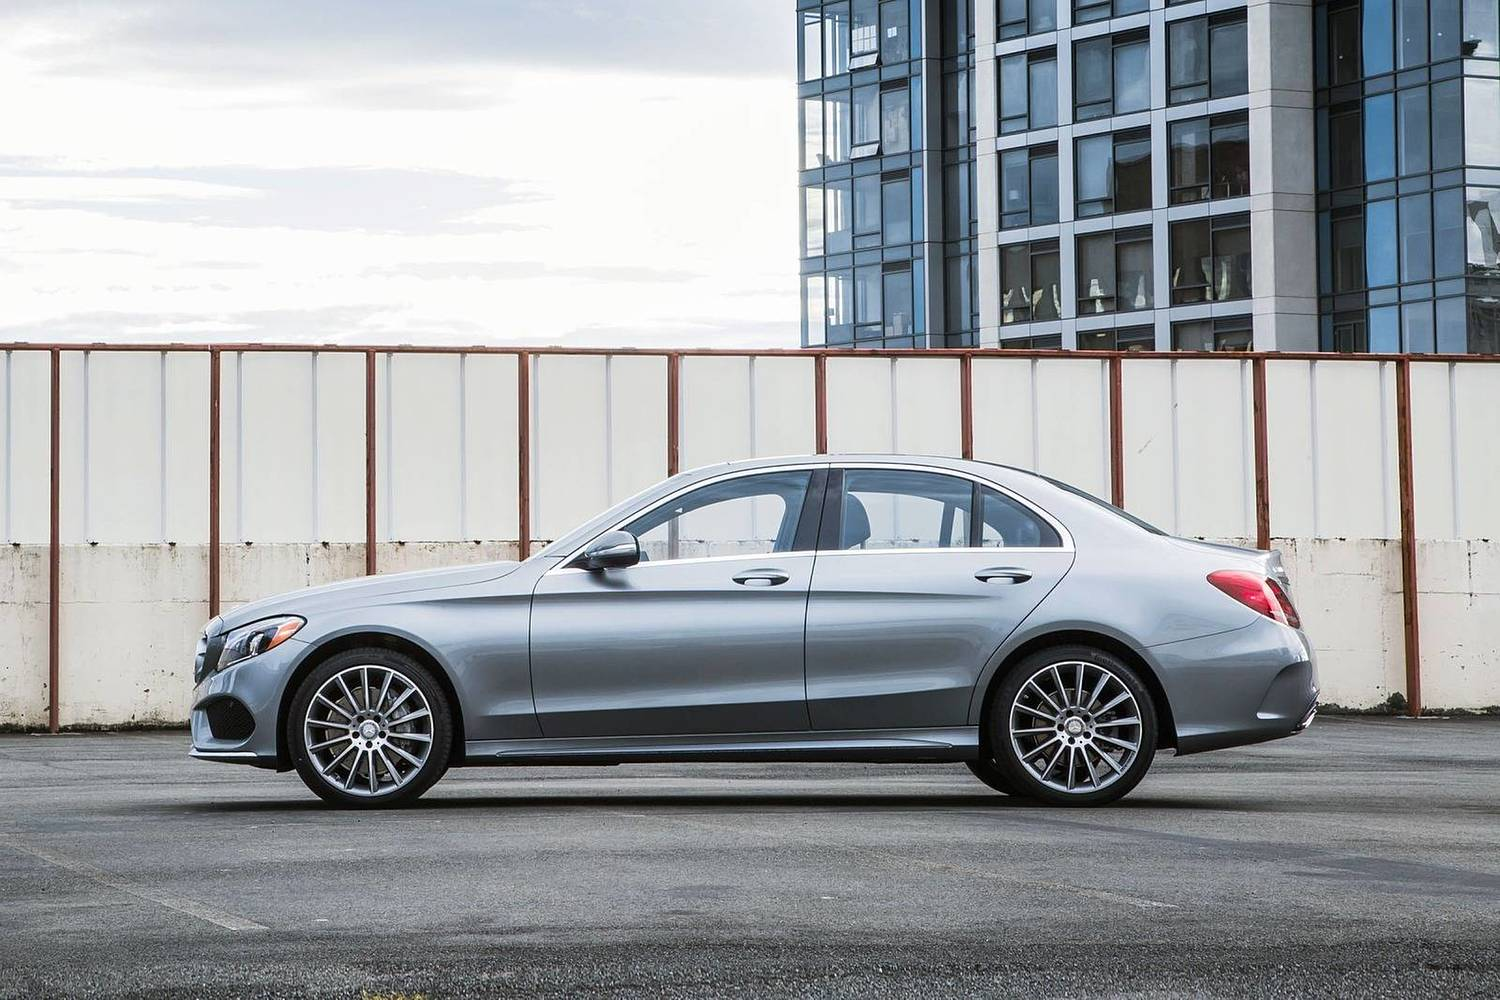 2018 Mercedes-Benz C-Class C 300 4MATIC Sedan Profile Shown